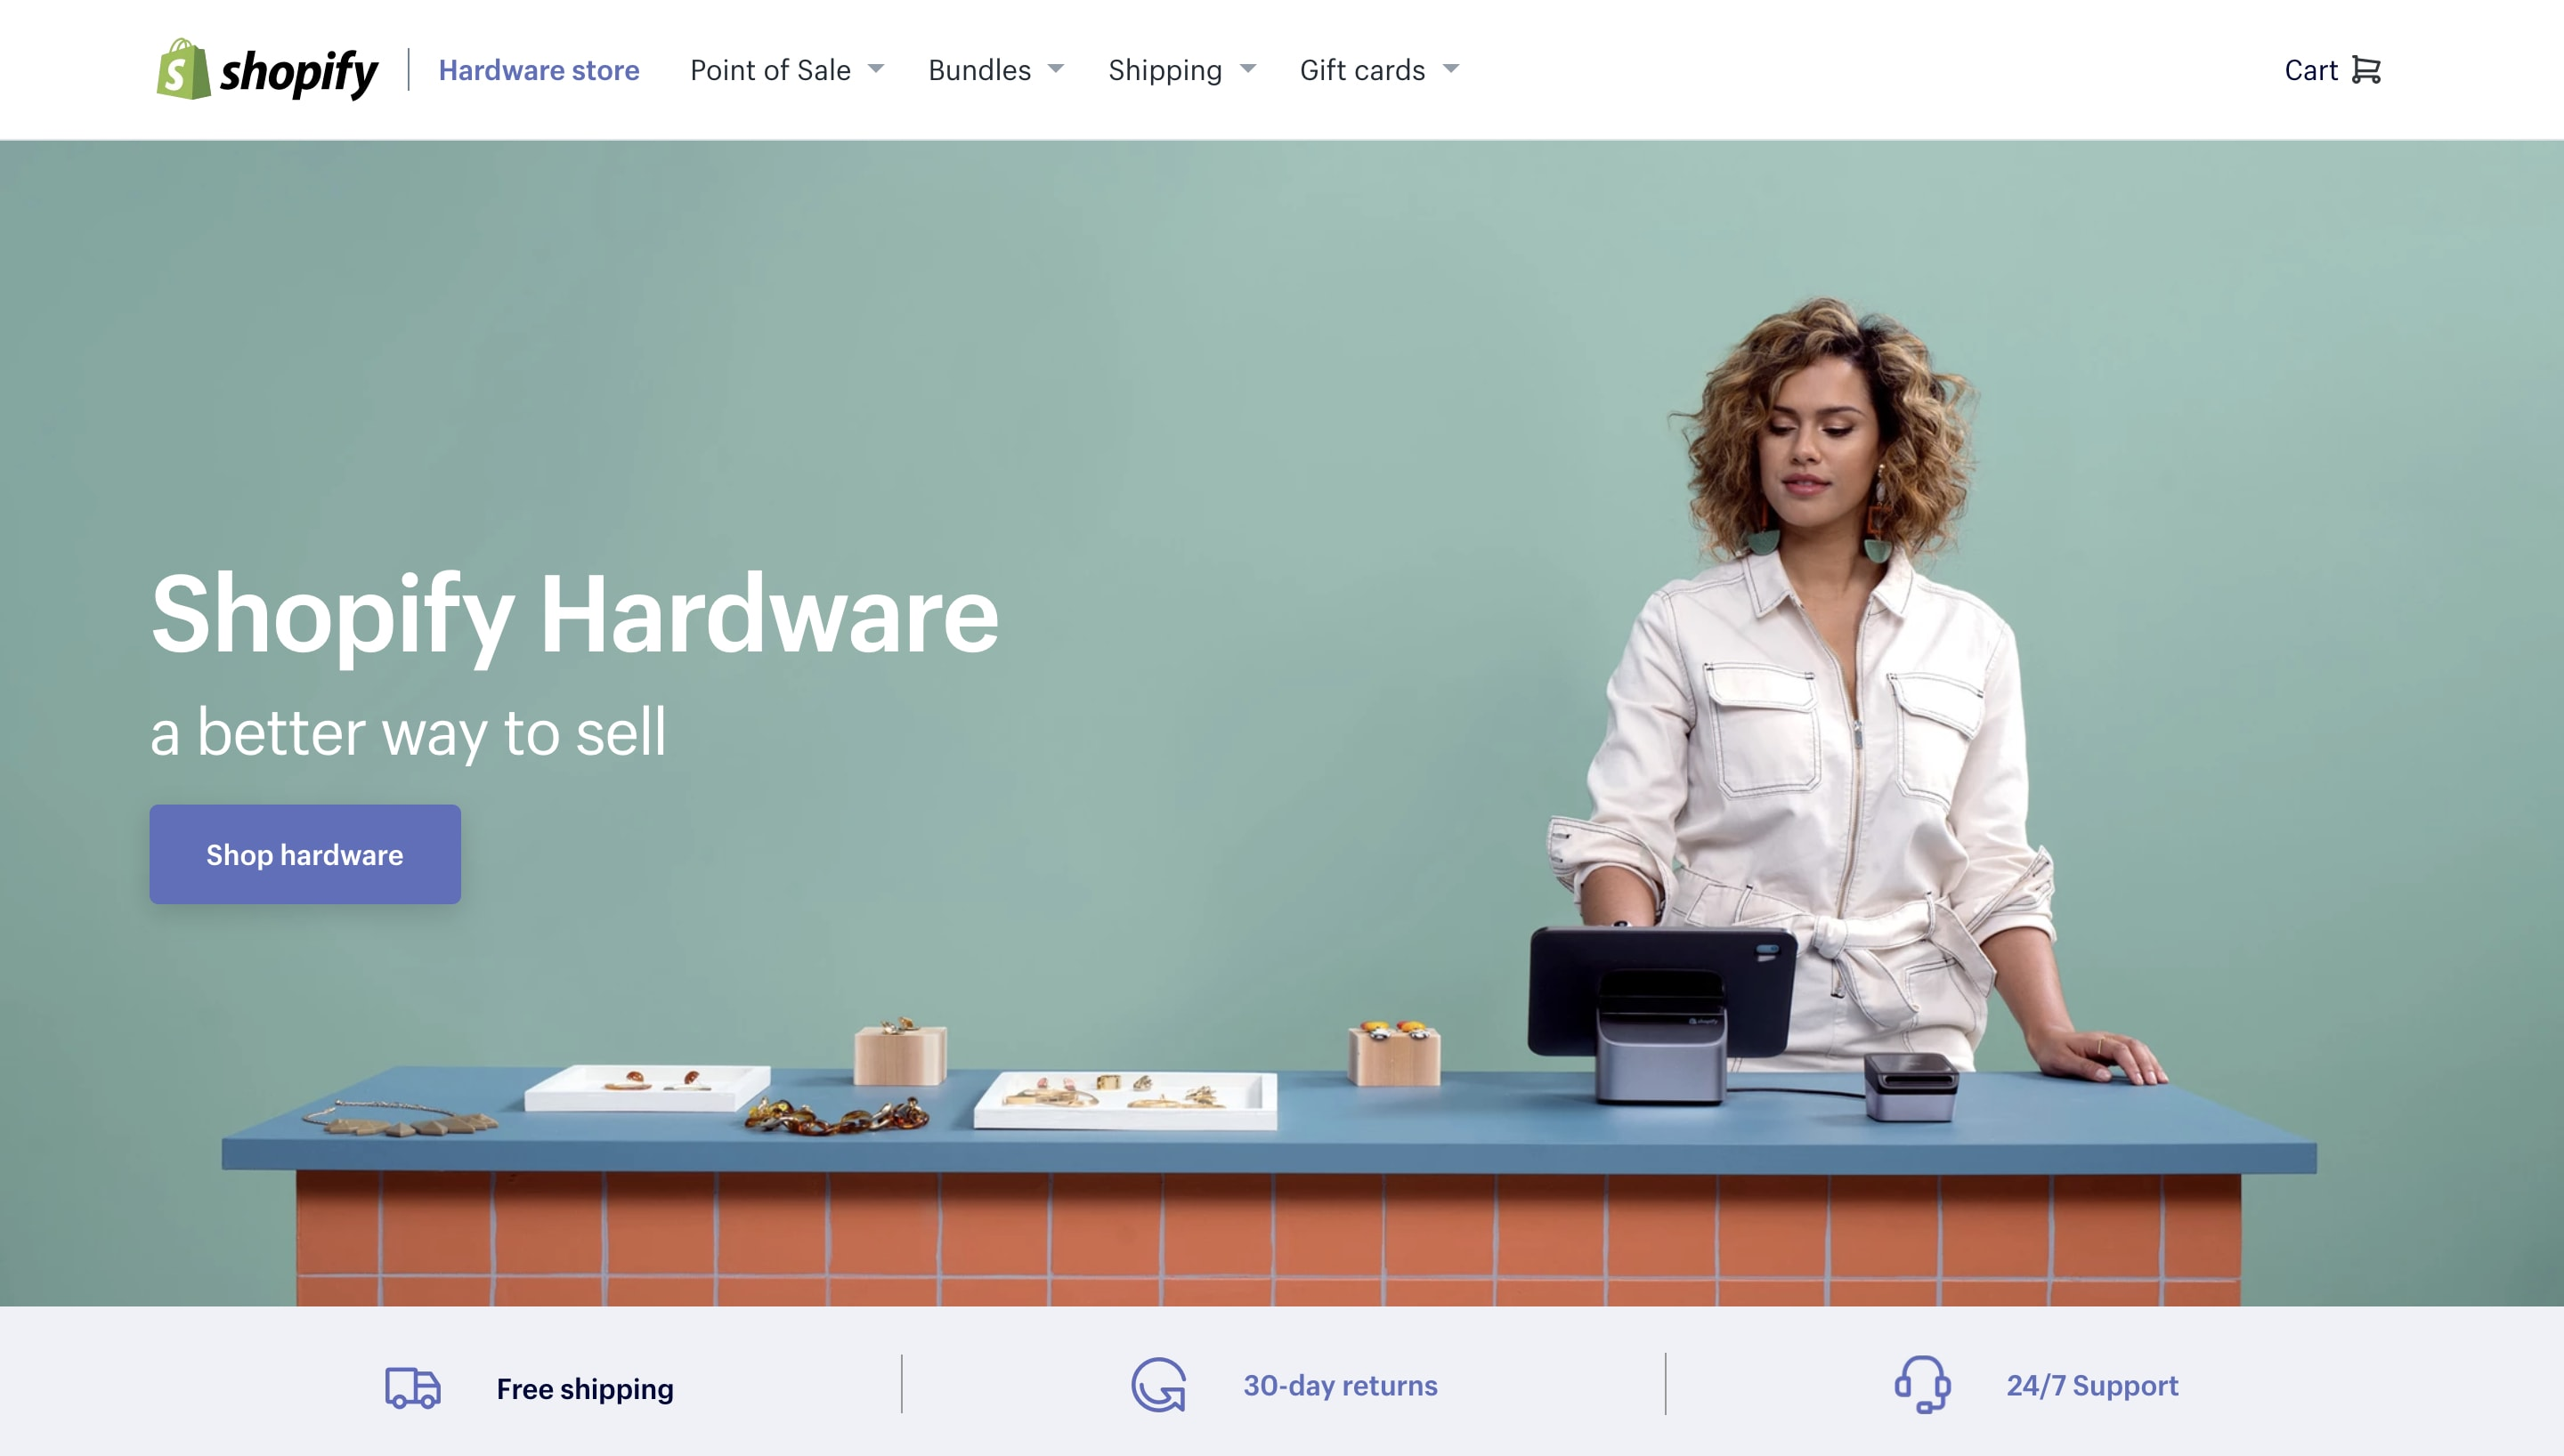 Shopify hardware store